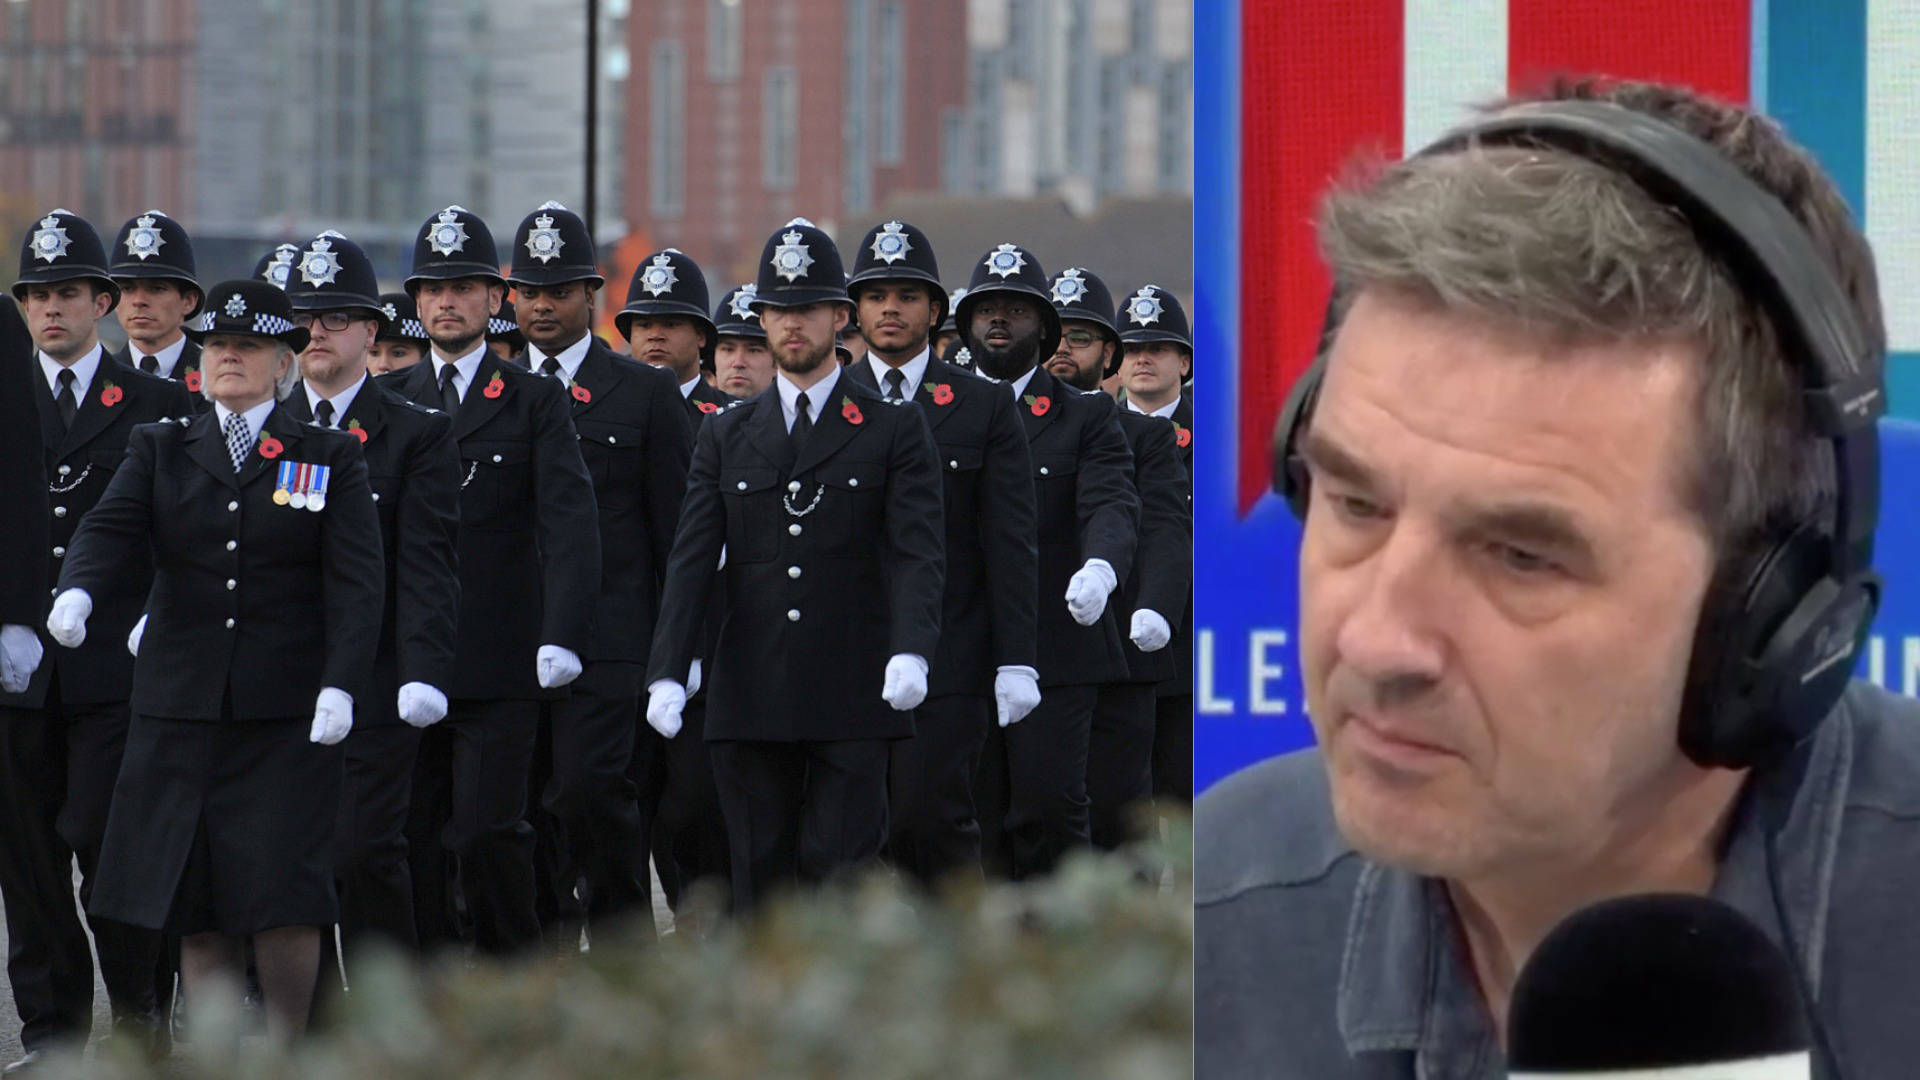 """No Wonder Collars Aren't Being Felt"" This Caller Rages About PC Policing"